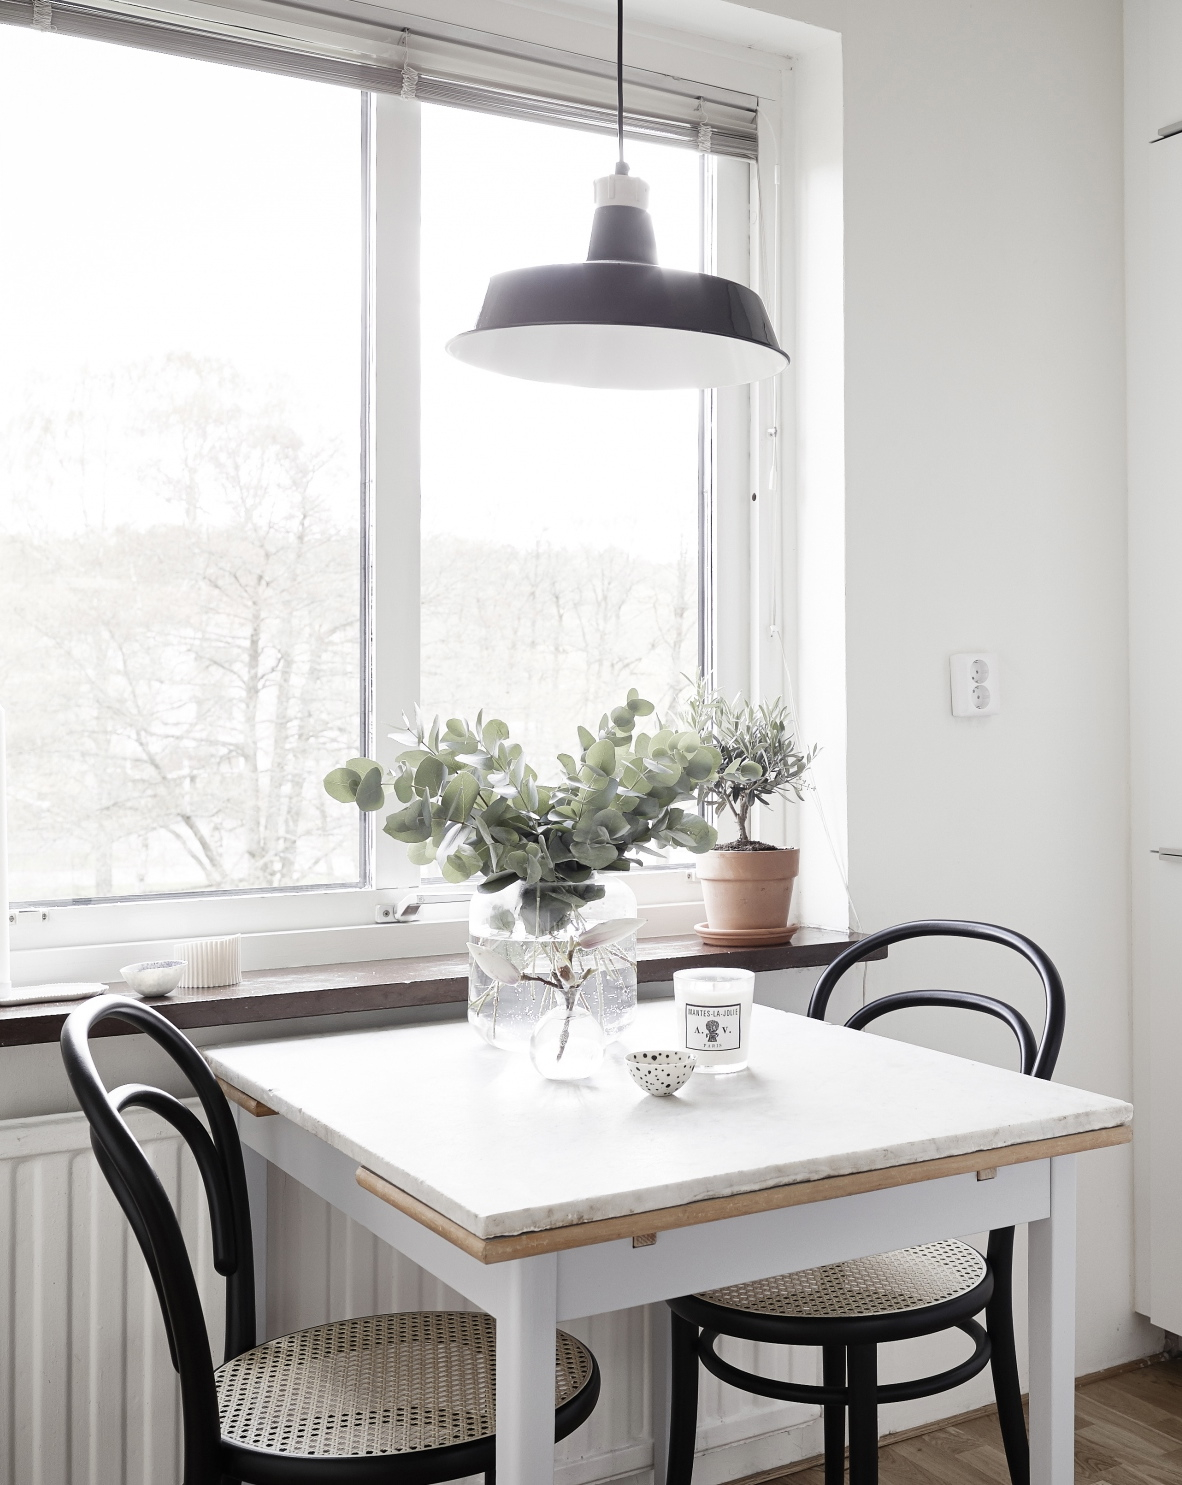 Dining-table-near-the-window-Thonet-chairs.jpg